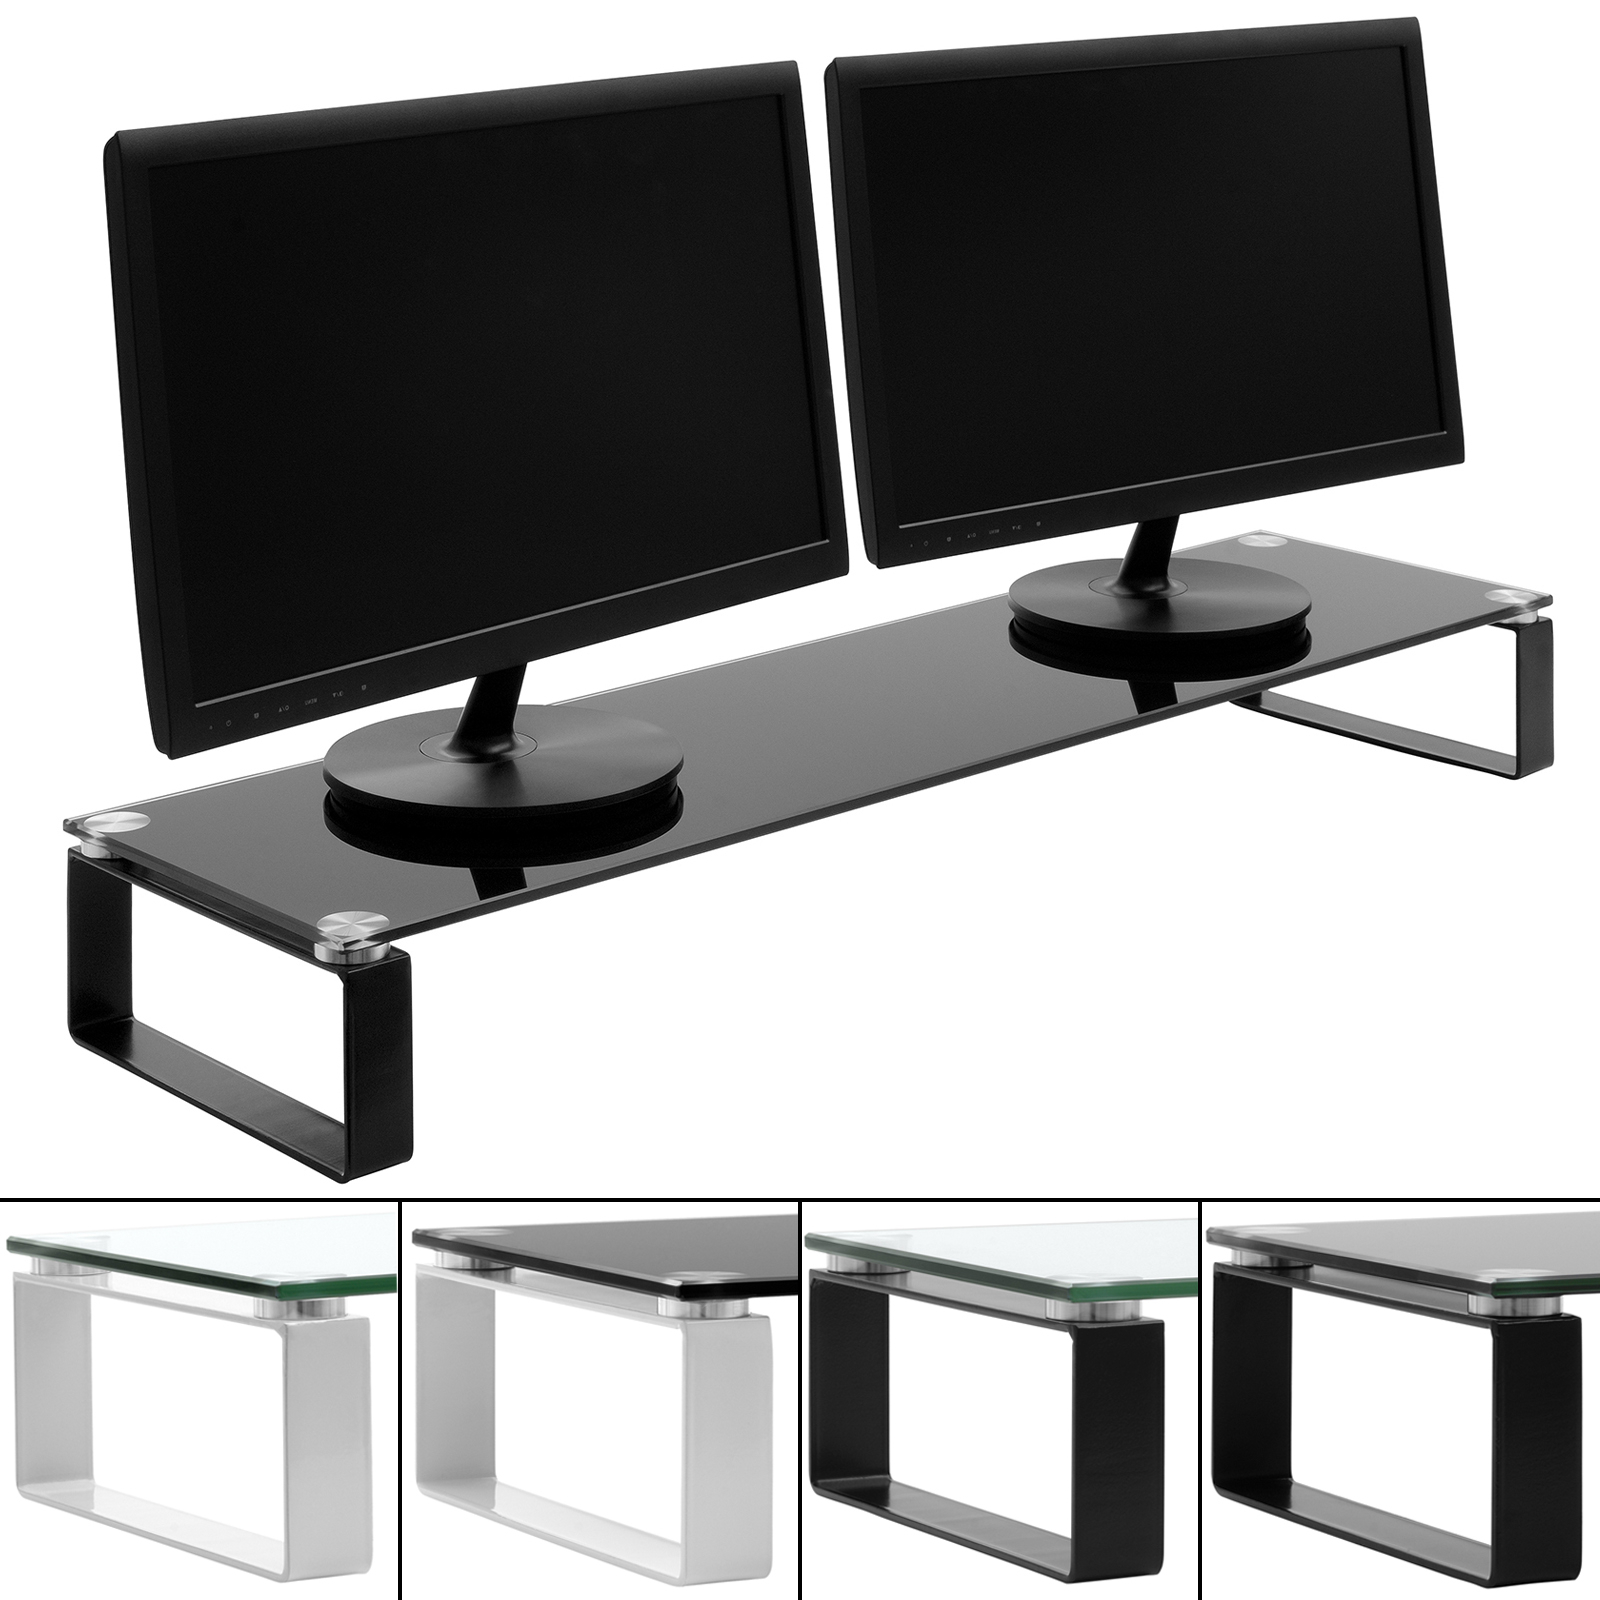 Double Tv Stands Throughout Recent X Large Double Monitor/screen Riser Block Shelf Computer/imac Tv (Gallery 1 of 20)